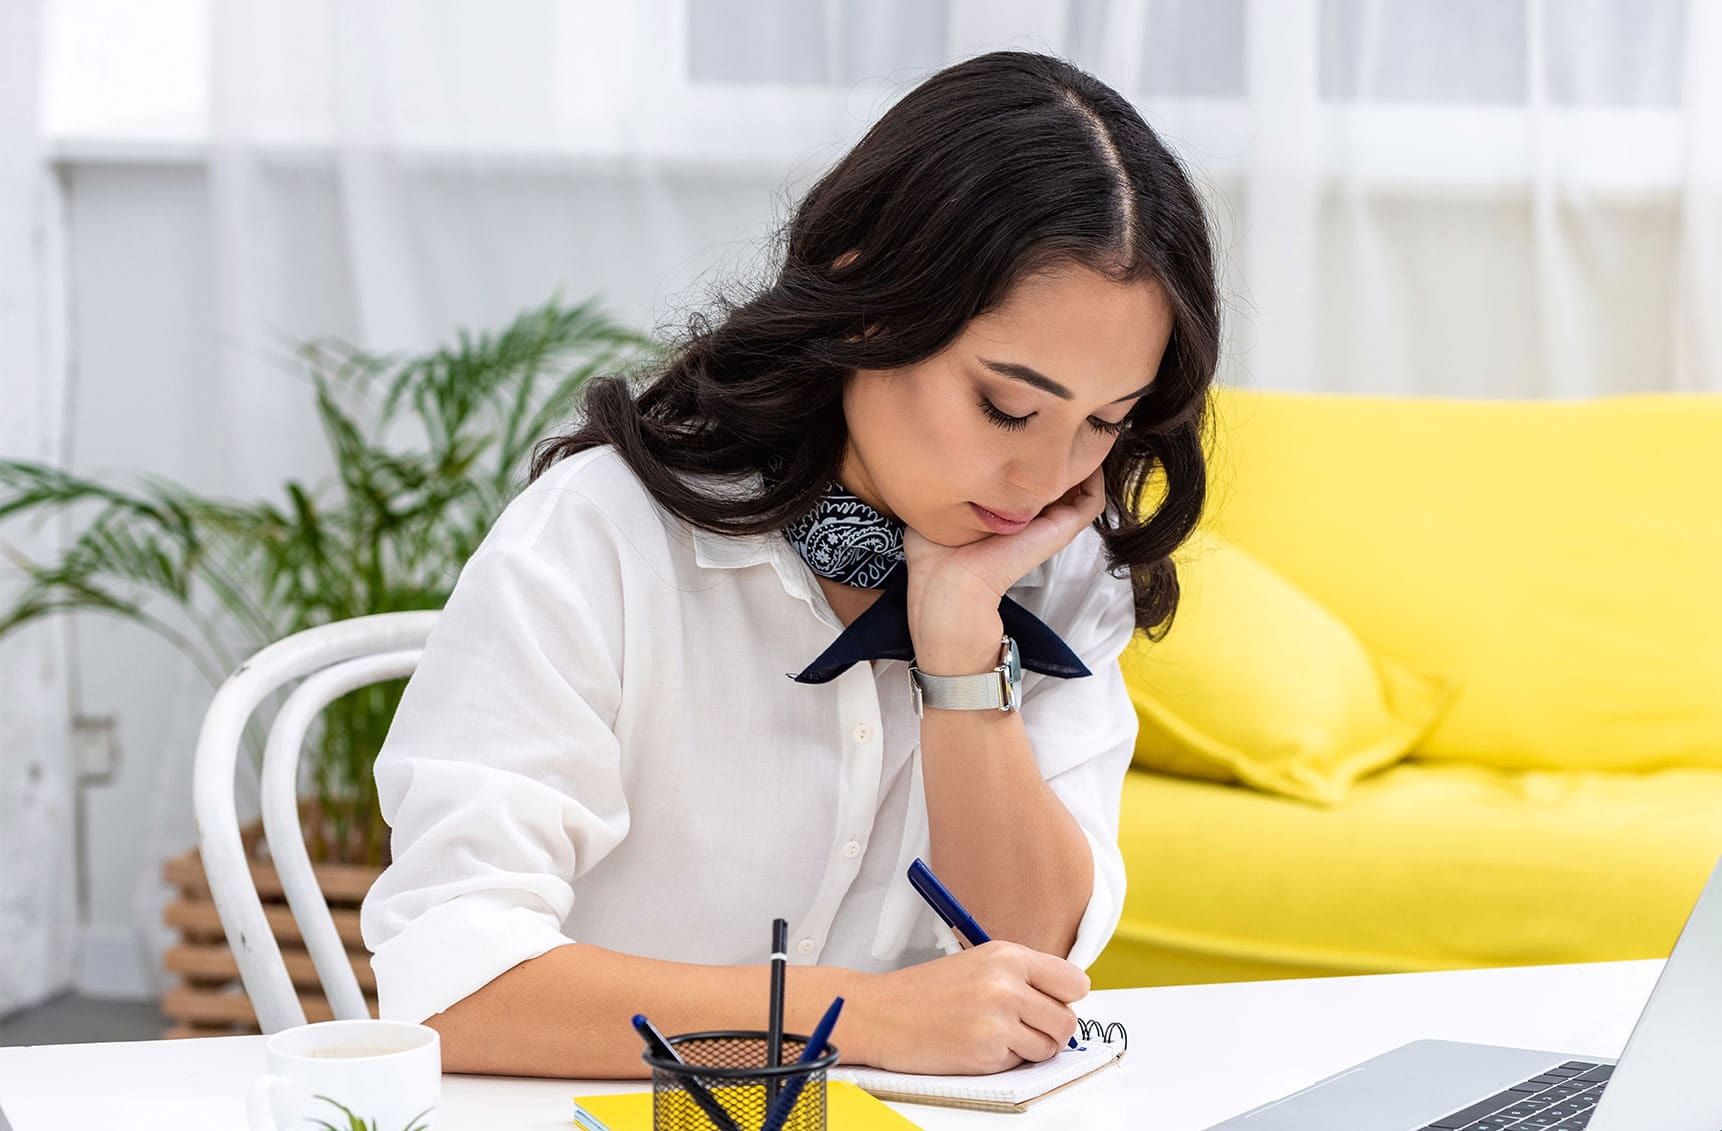 Professional woman sitting at desk writing in spiral notebook